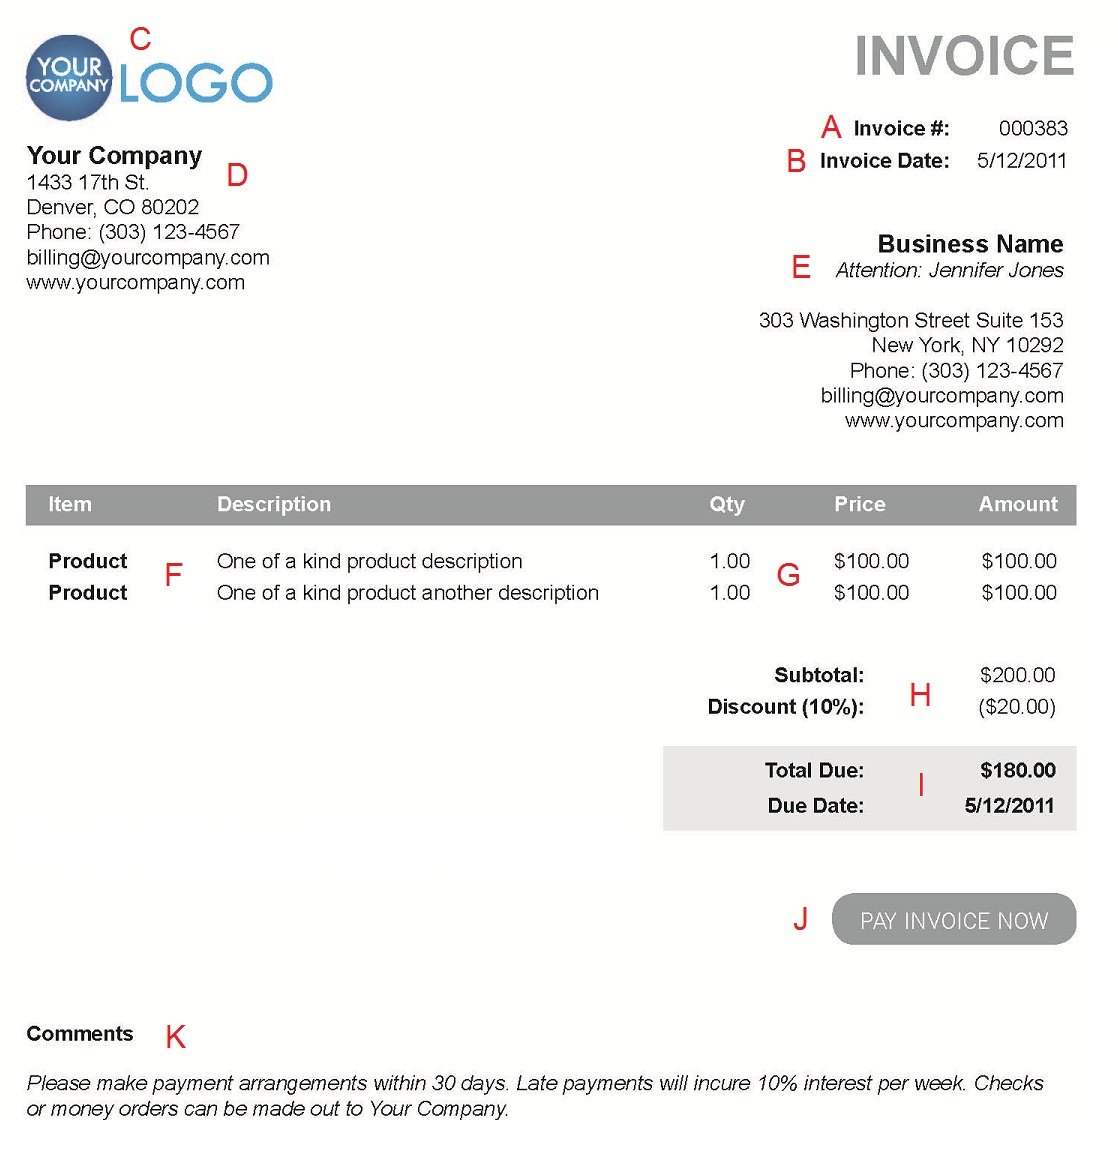 Ultrablogus  Fascinating The  Different Sections Of An Electronic Payment Invoice With Exquisite A  With Delightful Gap Insurance Return To Invoice Also Commercial Invoice Software In Addition Meaning Of Sales Invoice And Format Of Commercial Invoice As Well As Template Excel Invoice Additionally Format Of Invoice Bill From Paysimplecom With Ultrablogus  Exquisite The  Different Sections Of An Electronic Payment Invoice With Delightful A  And Fascinating Gap Insurance Return To Invoice Also Commercial Invoice Software In Addition Meaning Of Sales Invoice From Paysimplecom